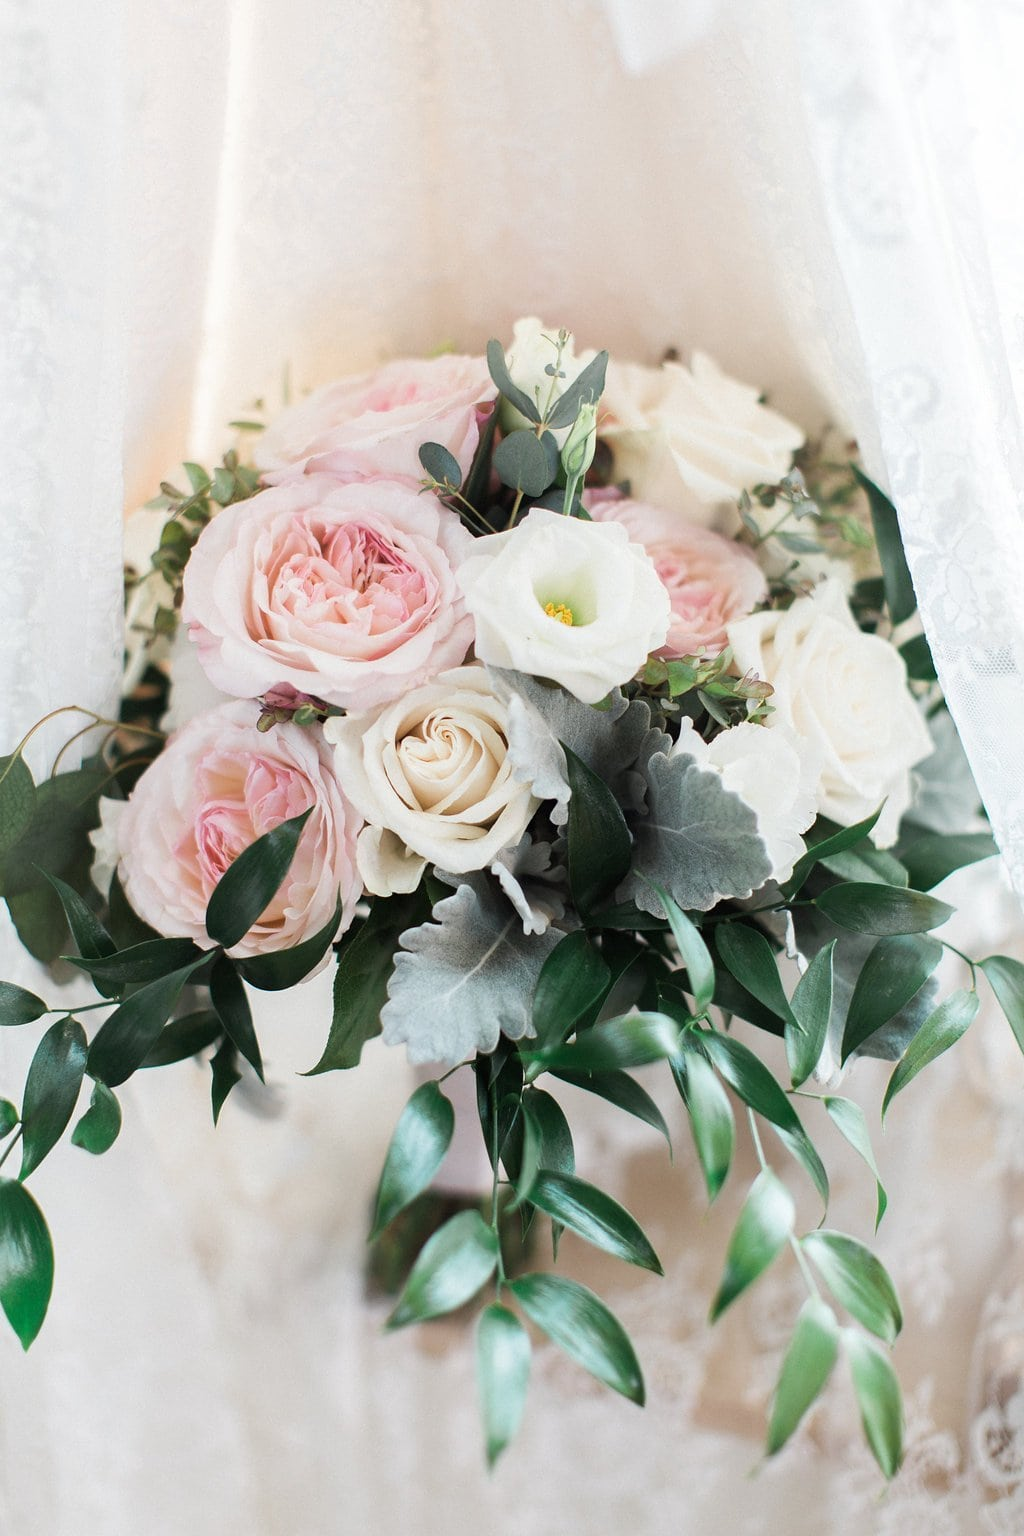 Close up of bride's light pink and white bouquet with veil